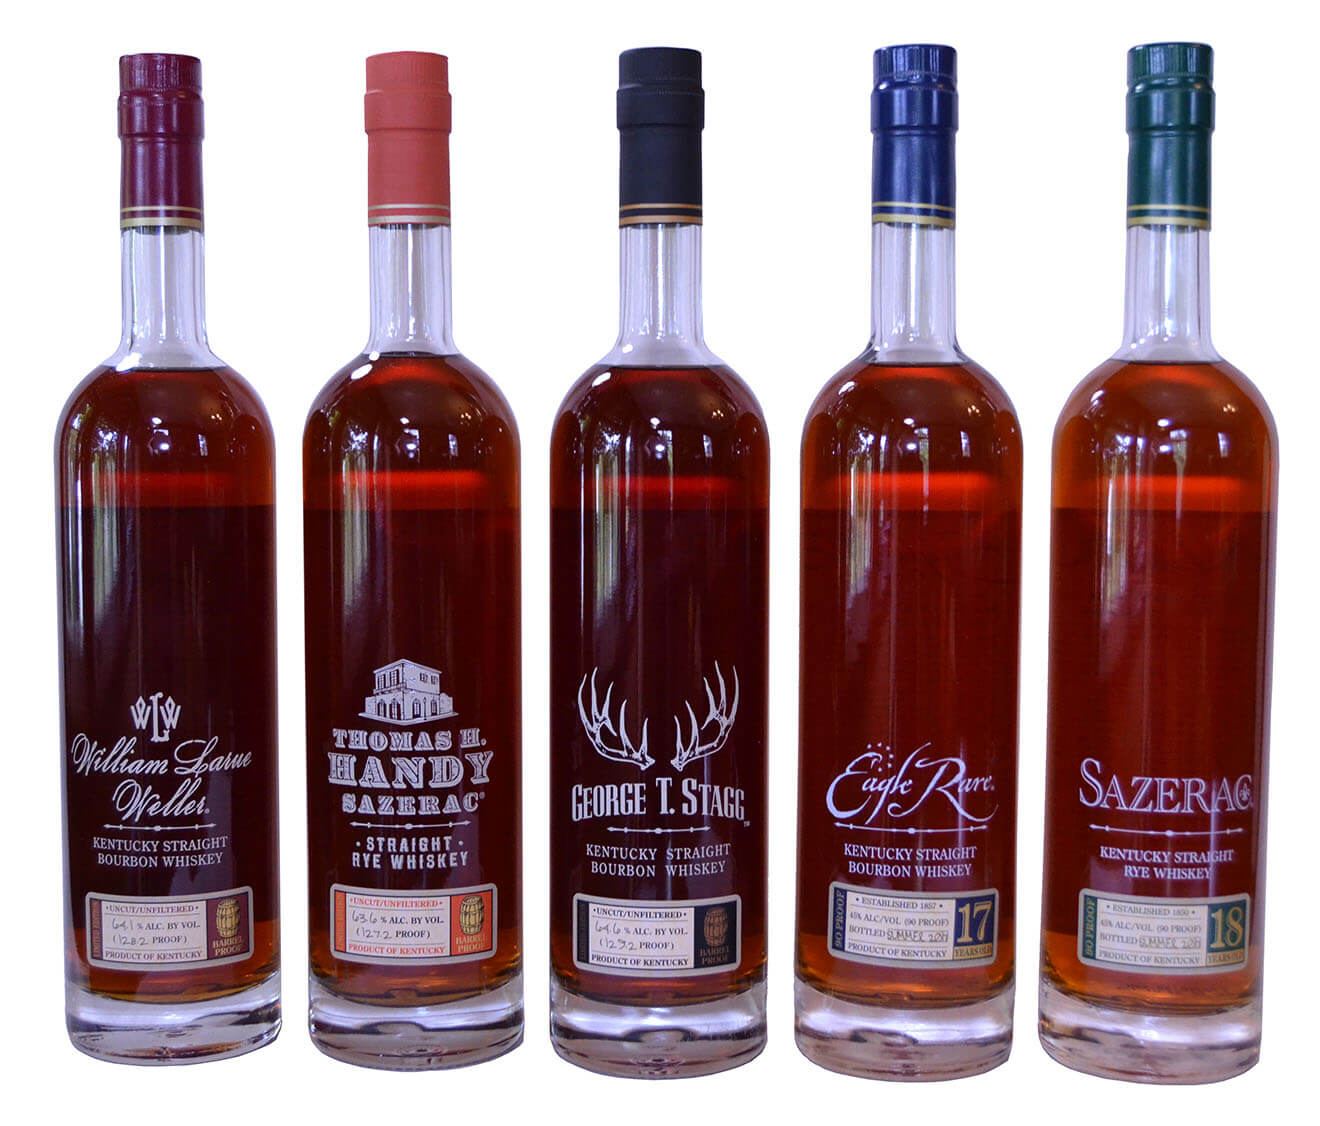 Buffalo Trace Antique Collection, bottles on white